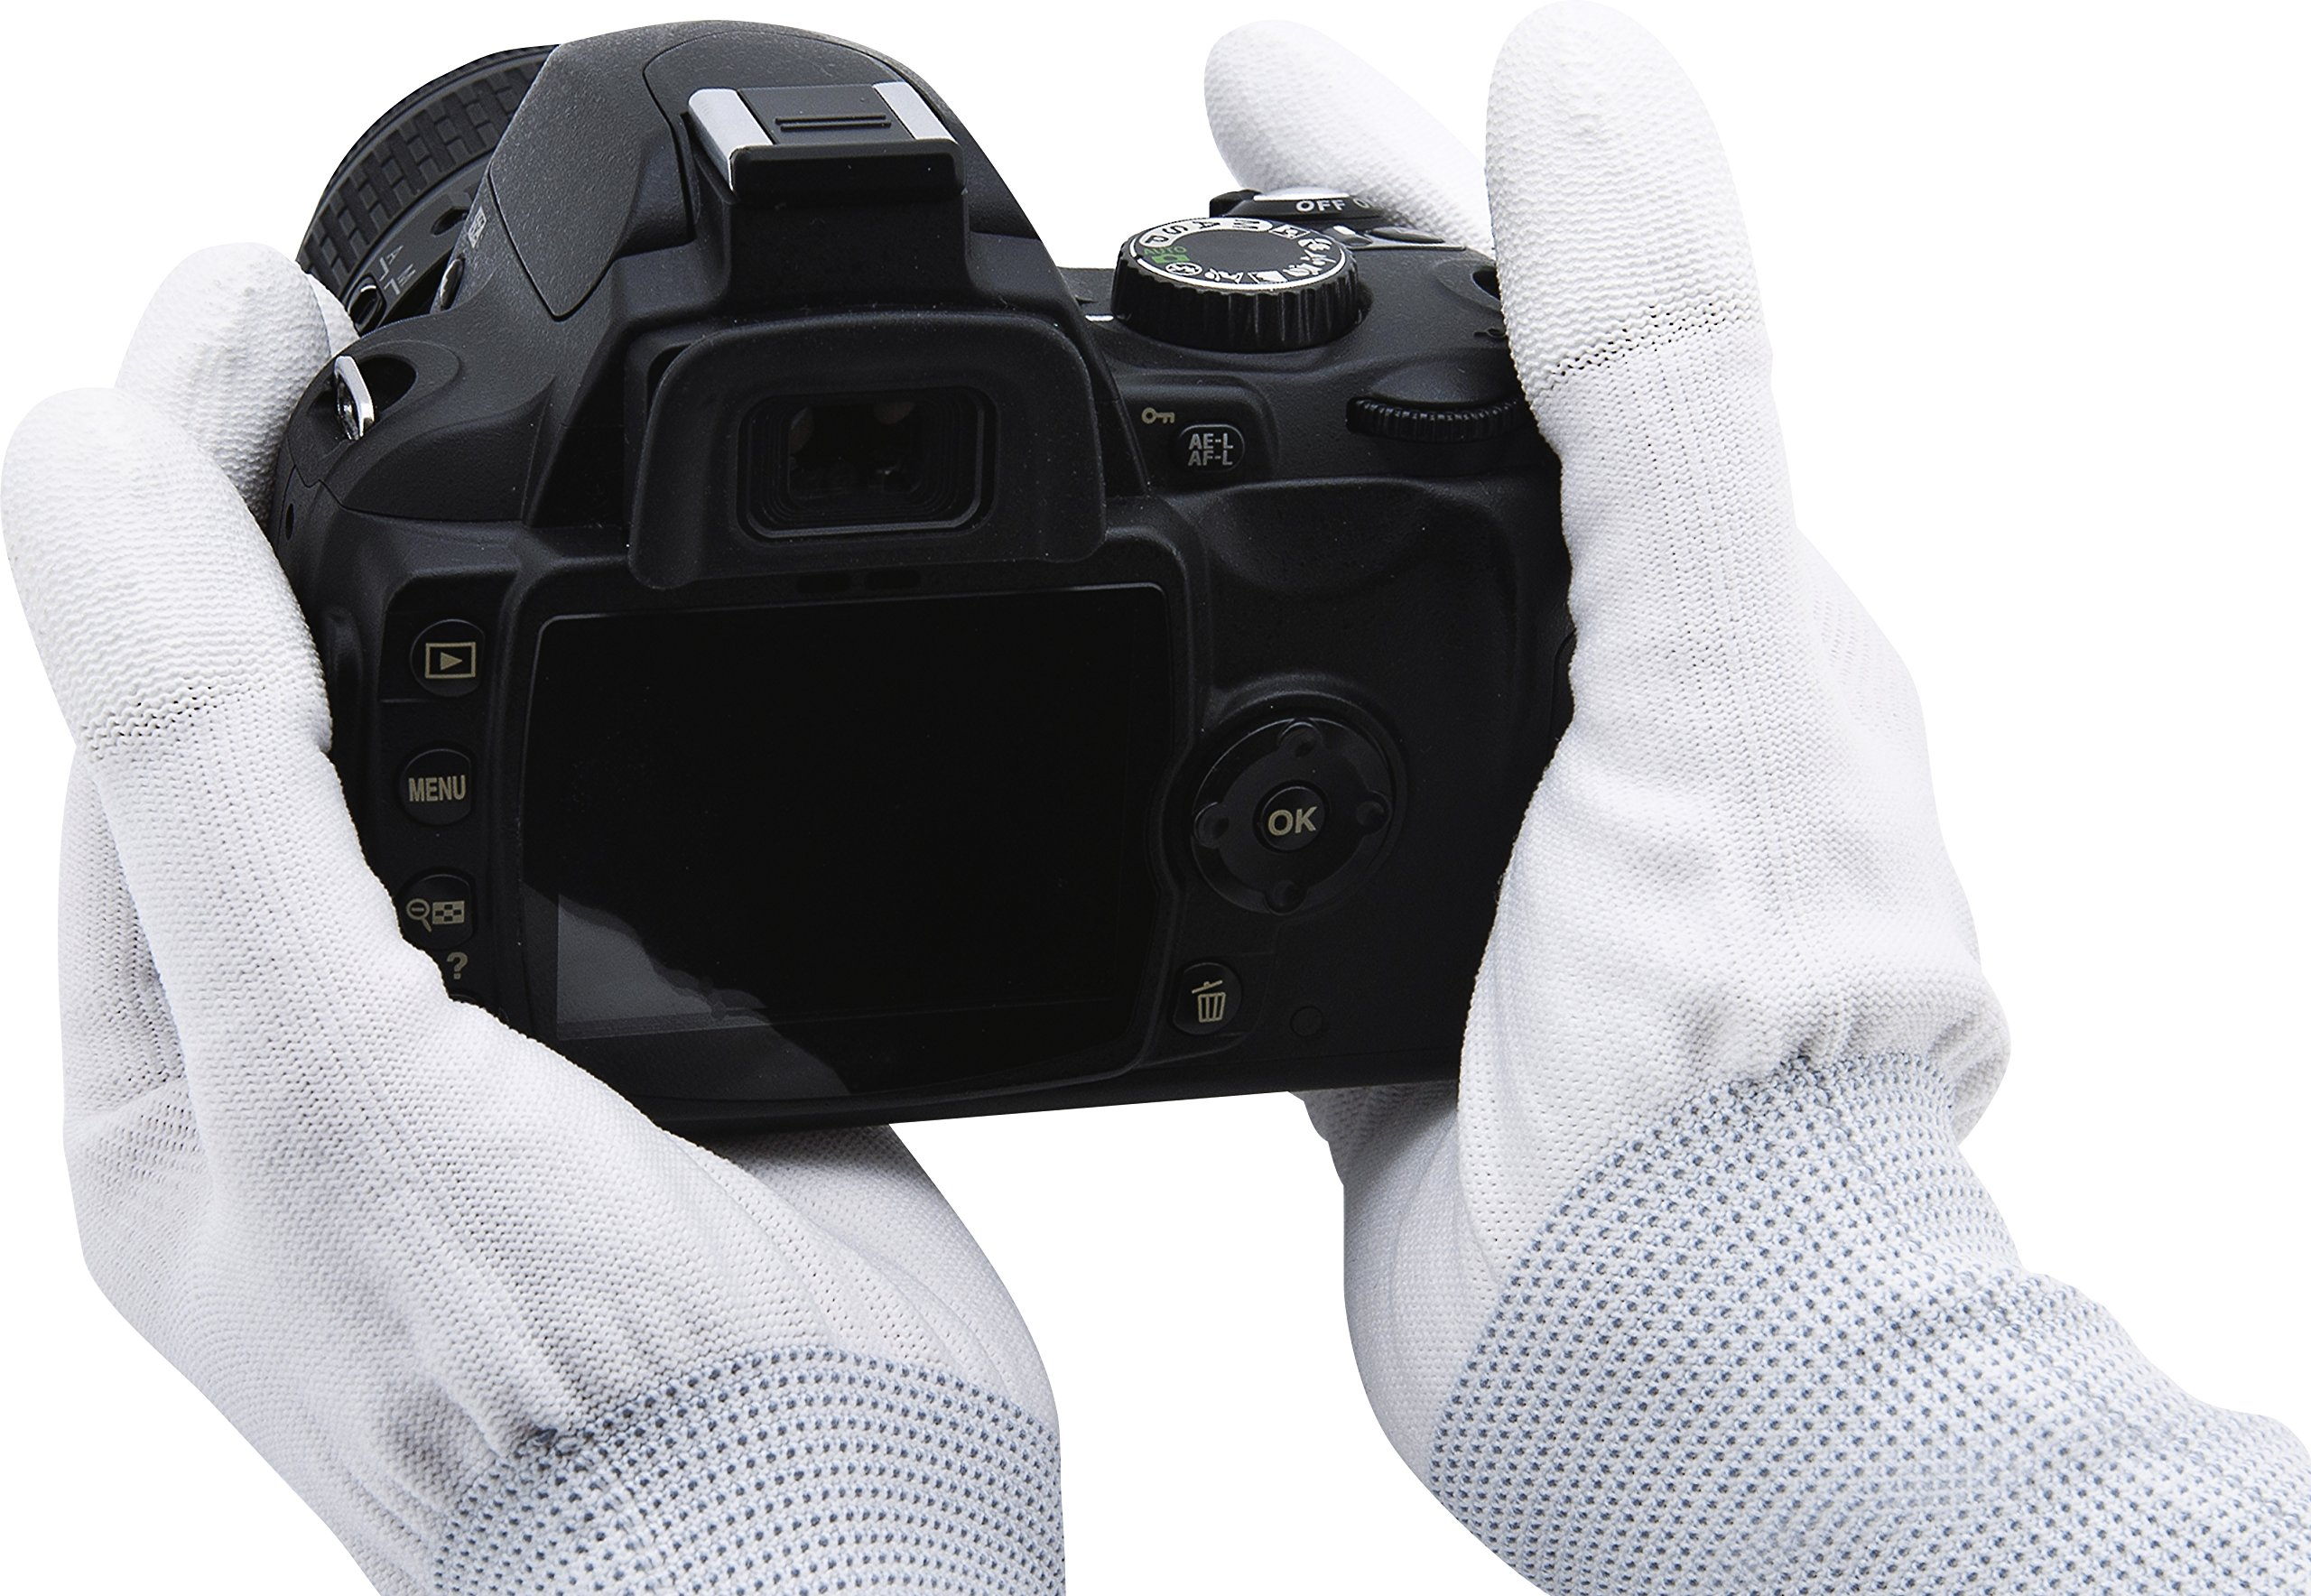 Rollei Lens Cleaning Gloves L - Anti static gloves for cleaning cameras, lenses and camera sensors, optimal grip, white by Rollei